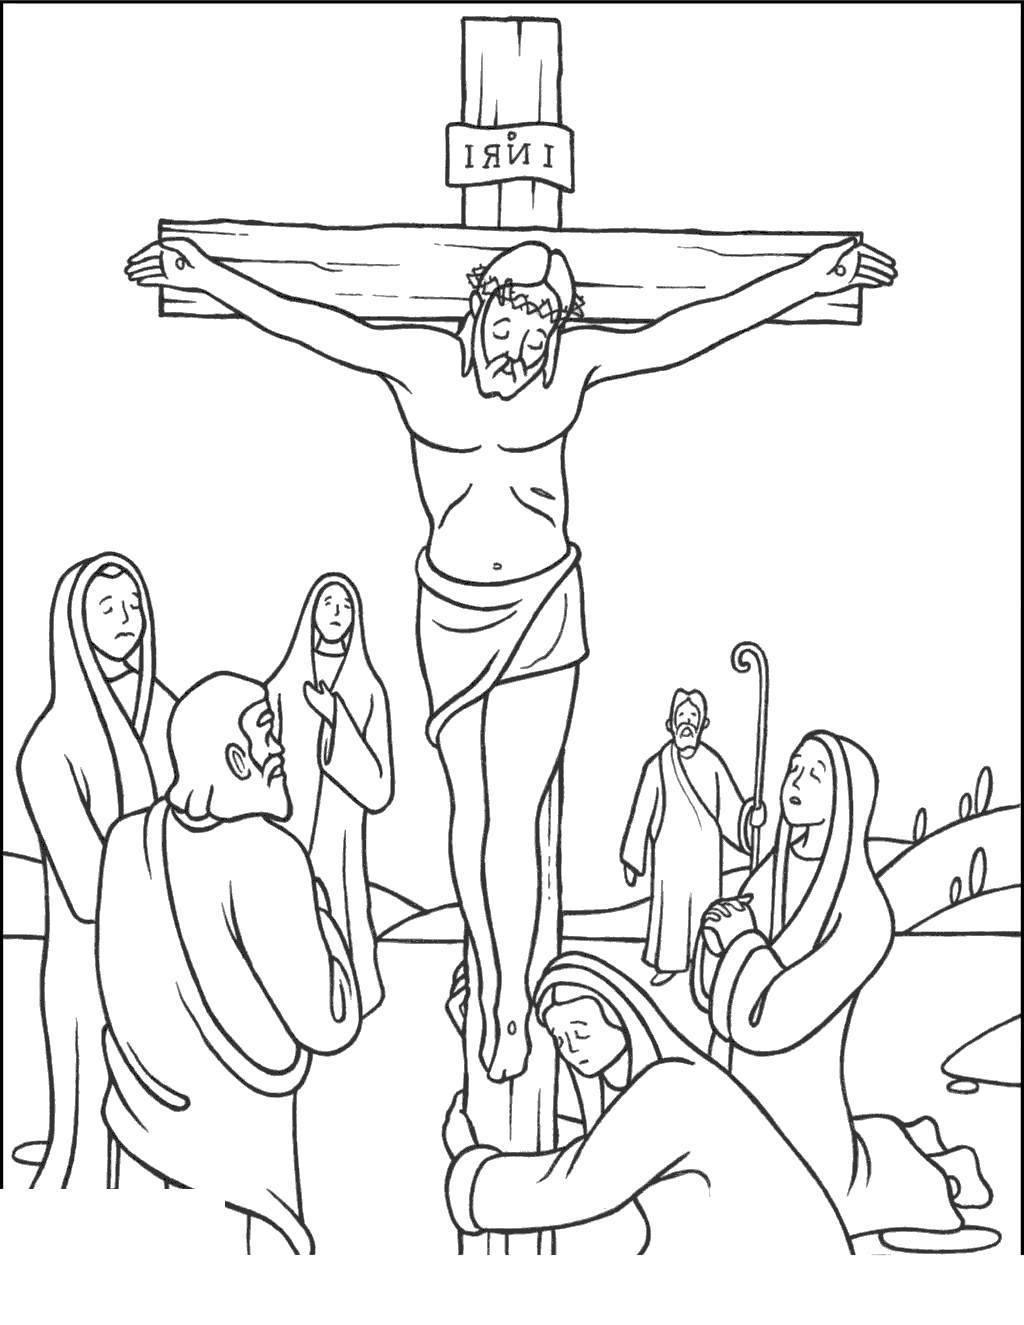 stations of the cross clipart stations of the cross st peter roman catholic church the clipart cross stations of